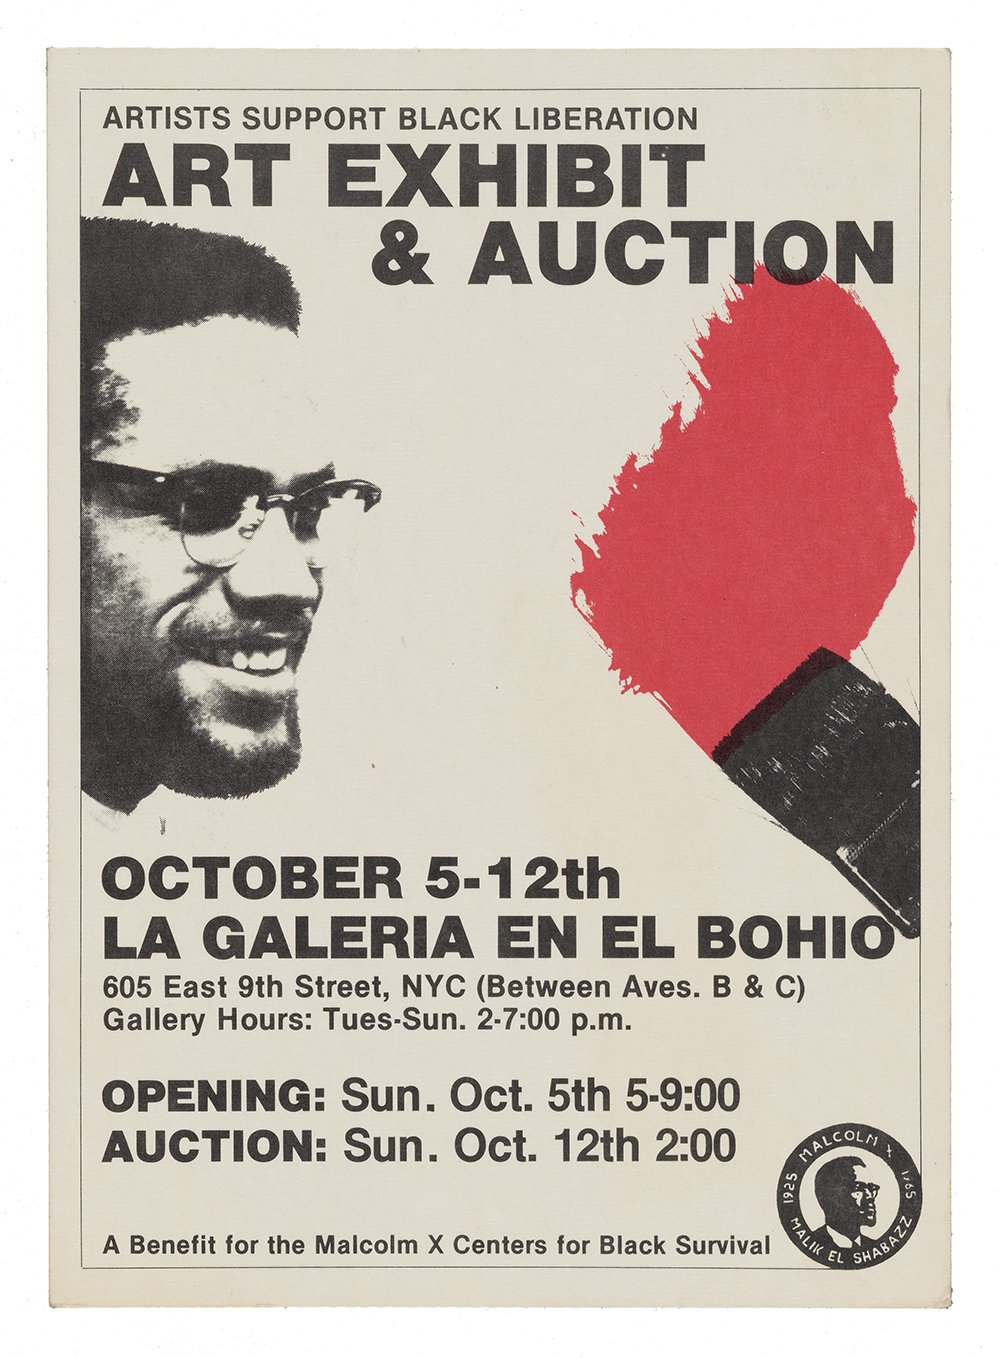 Poster with black text and graphics of Malcolm X and a black paintbrush making red marks.